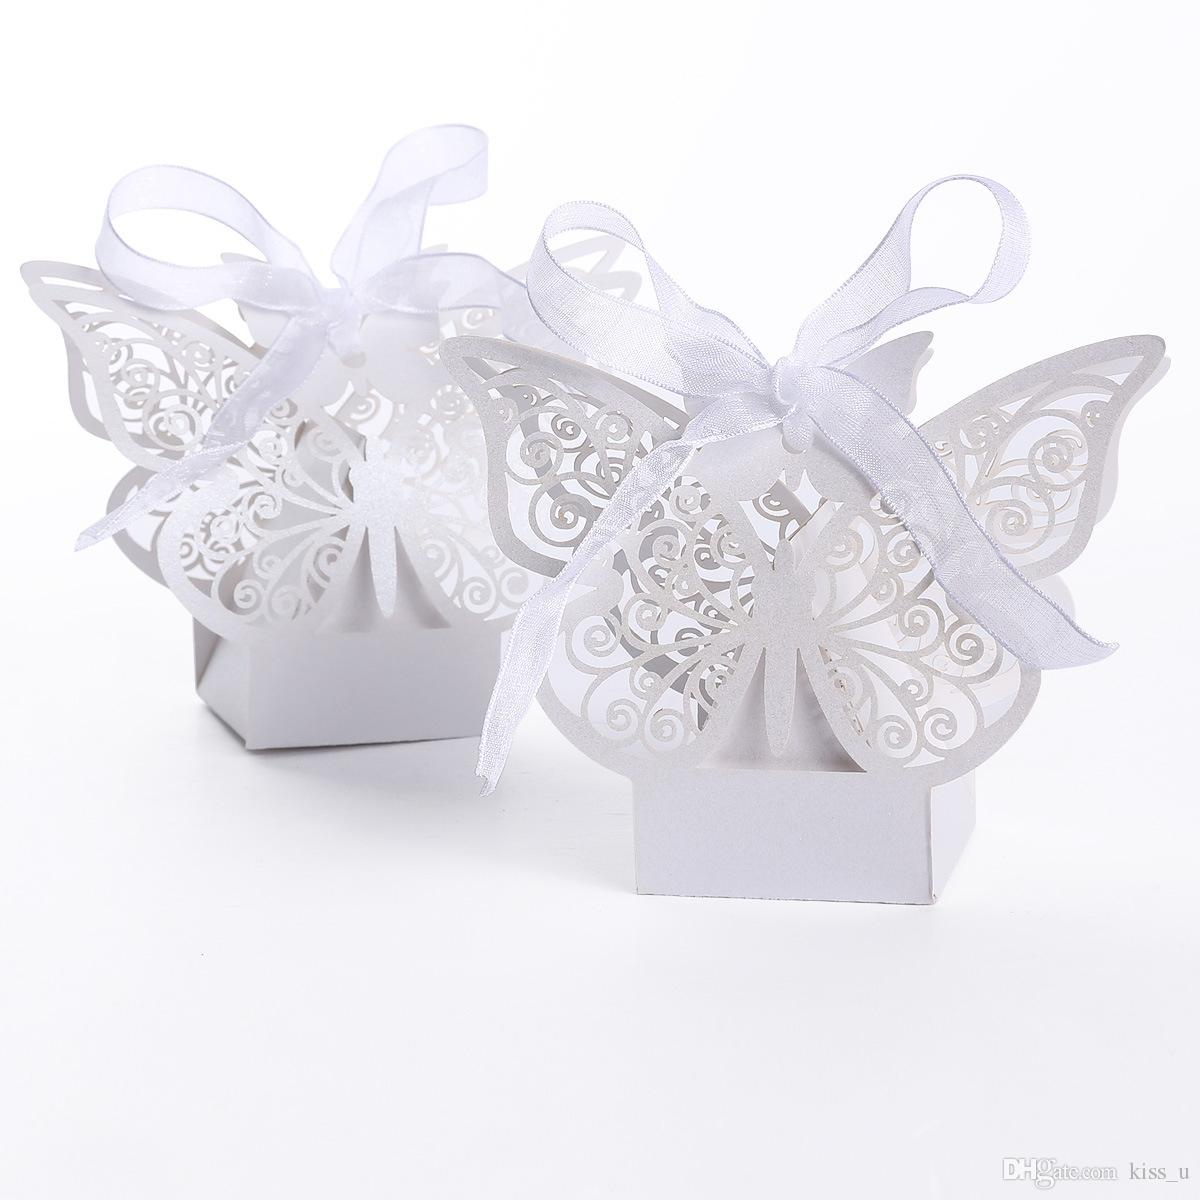 50-100pcs Butterfly Pattern Favor Gift Candy Boxes Wedding Party Baby Shower